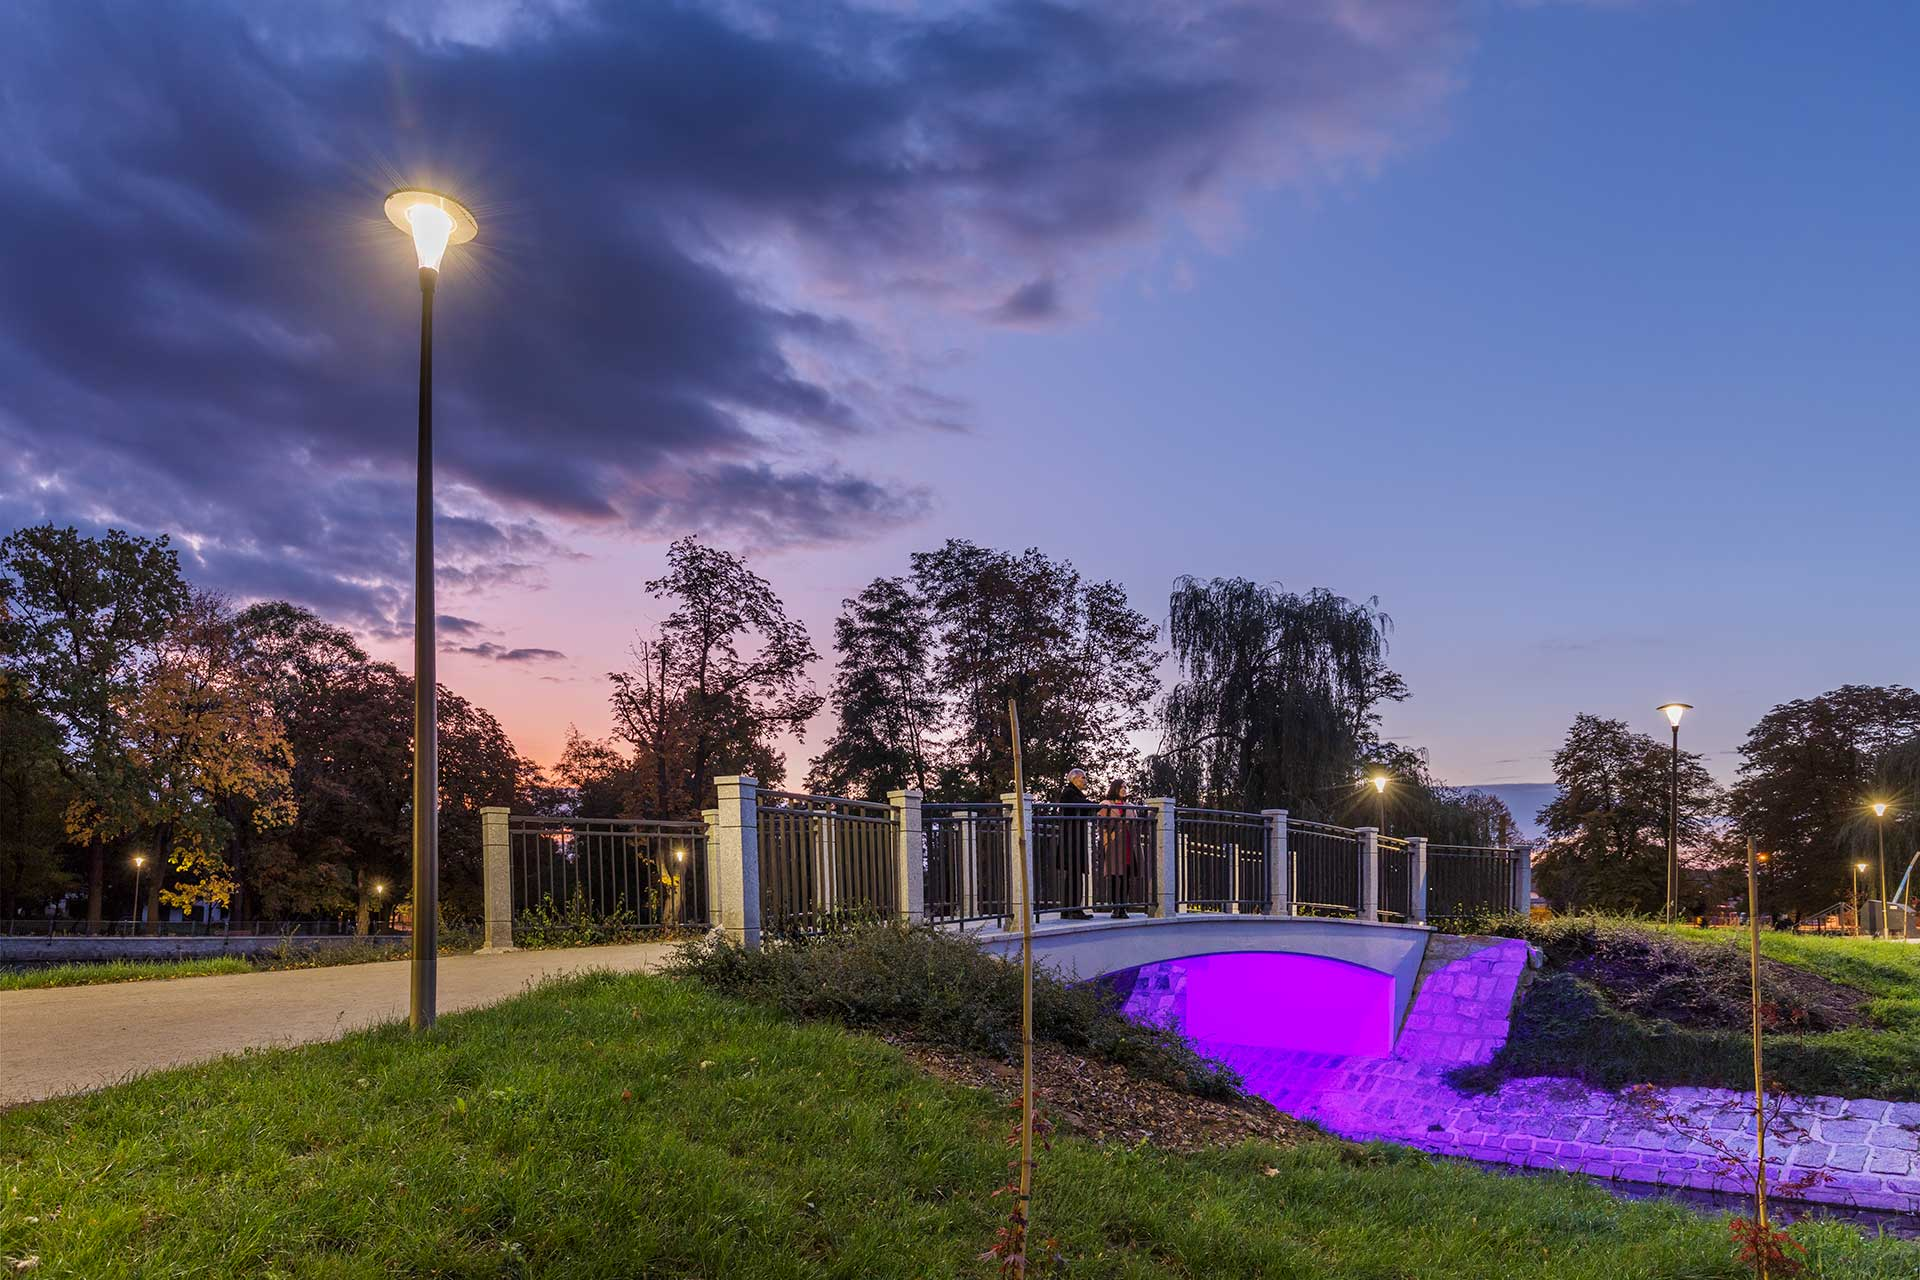 The Pilzeo lights the paths of Central Park in Swidnica to guide people in complete safety and comfort